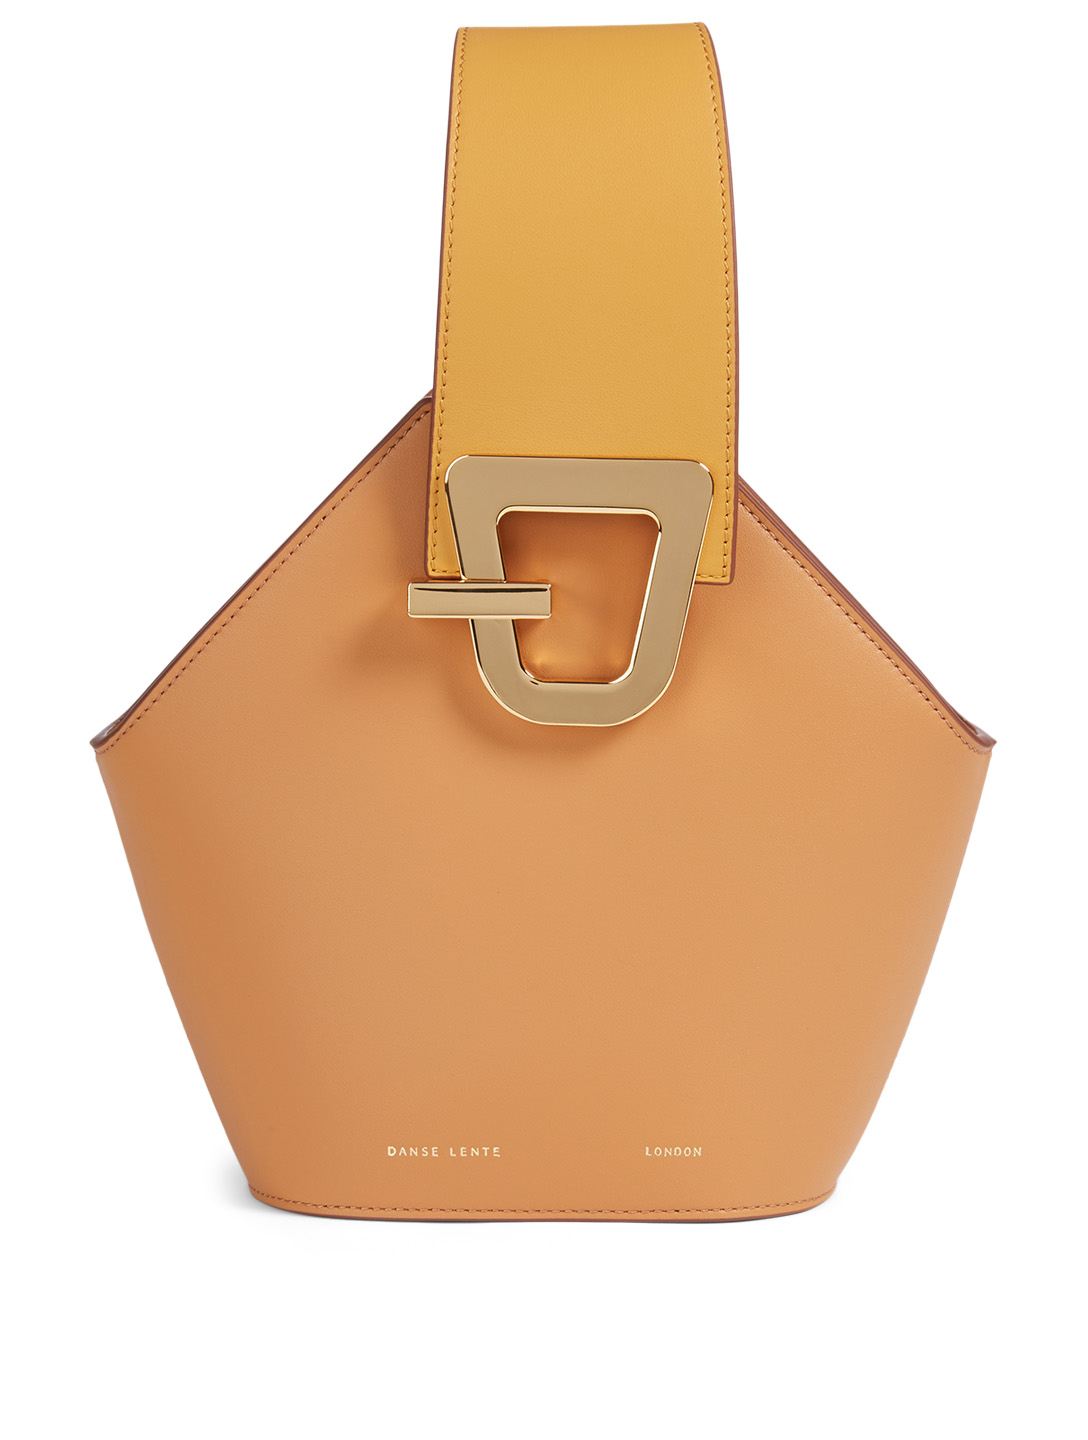 DANSE LENTE Mini Johnny Leather Hexagonal Bucket Bag Women's Orange